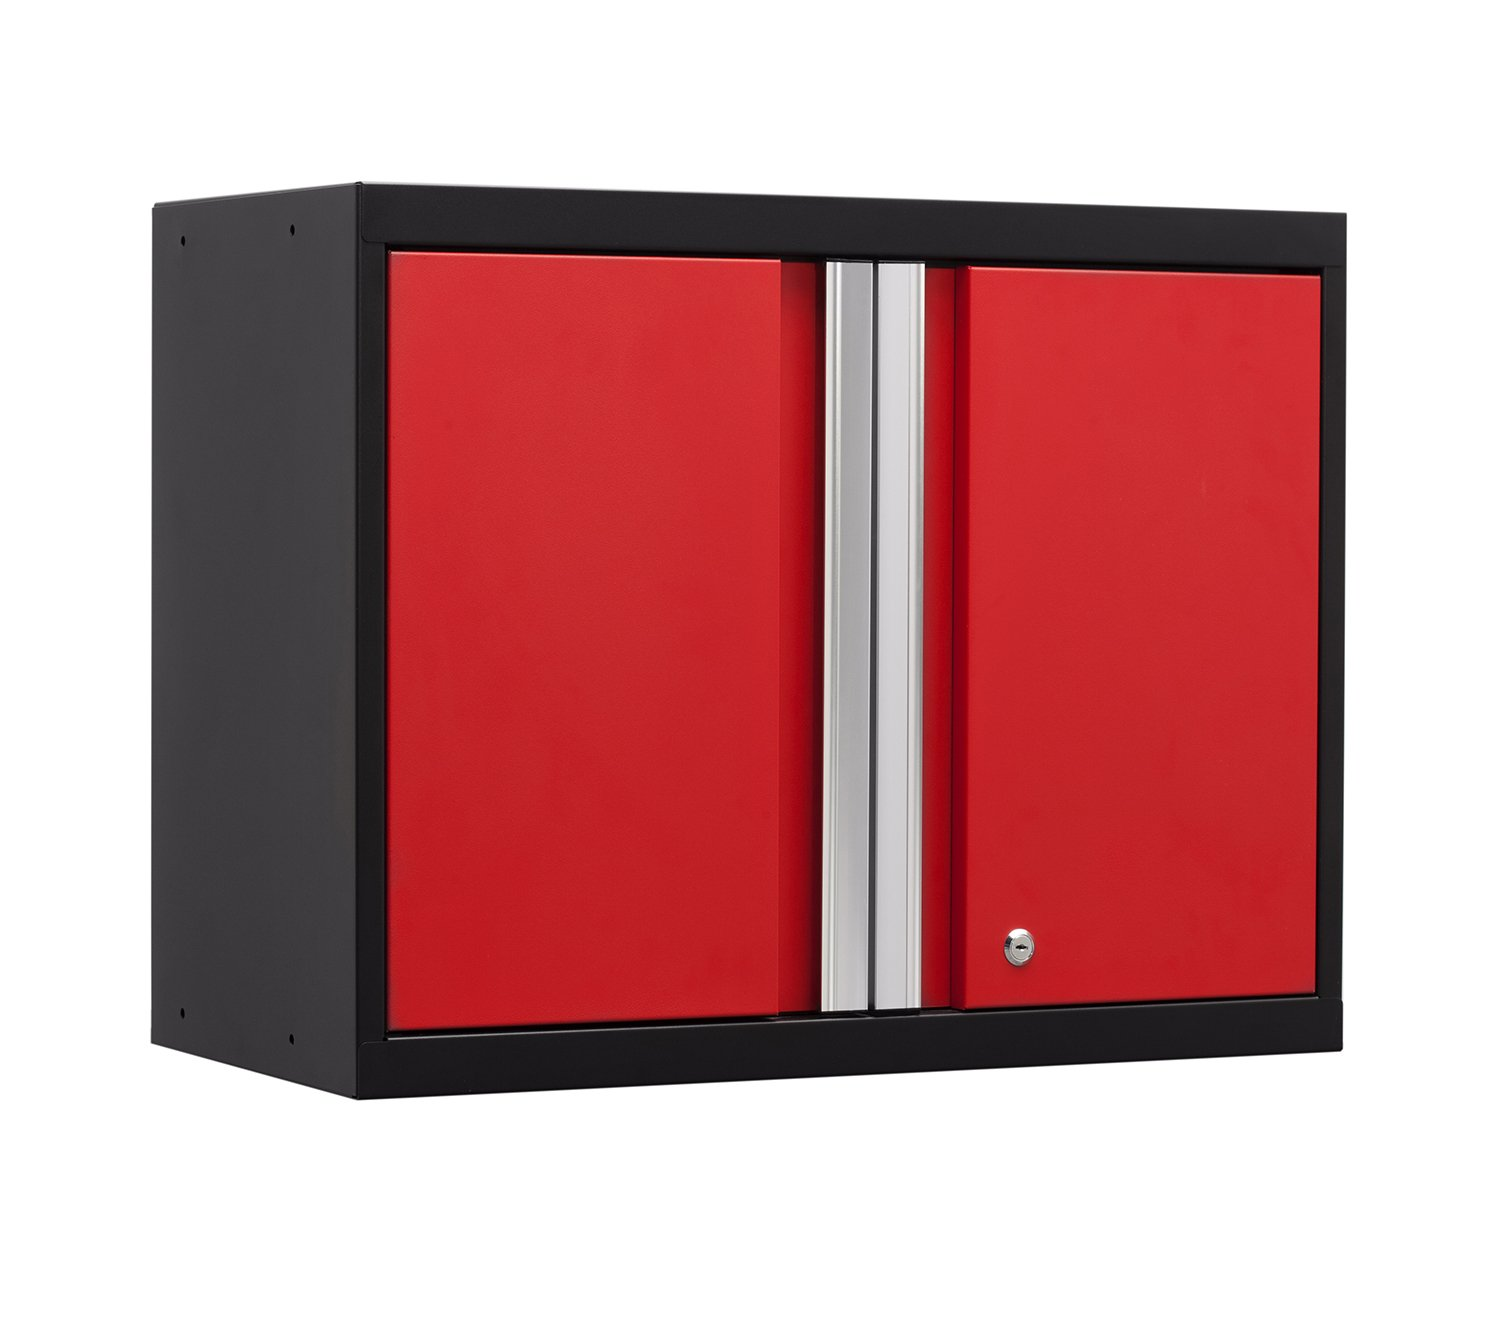 NewAge Products 52200 Pro 3.0 Series Wall Cabinet, Red